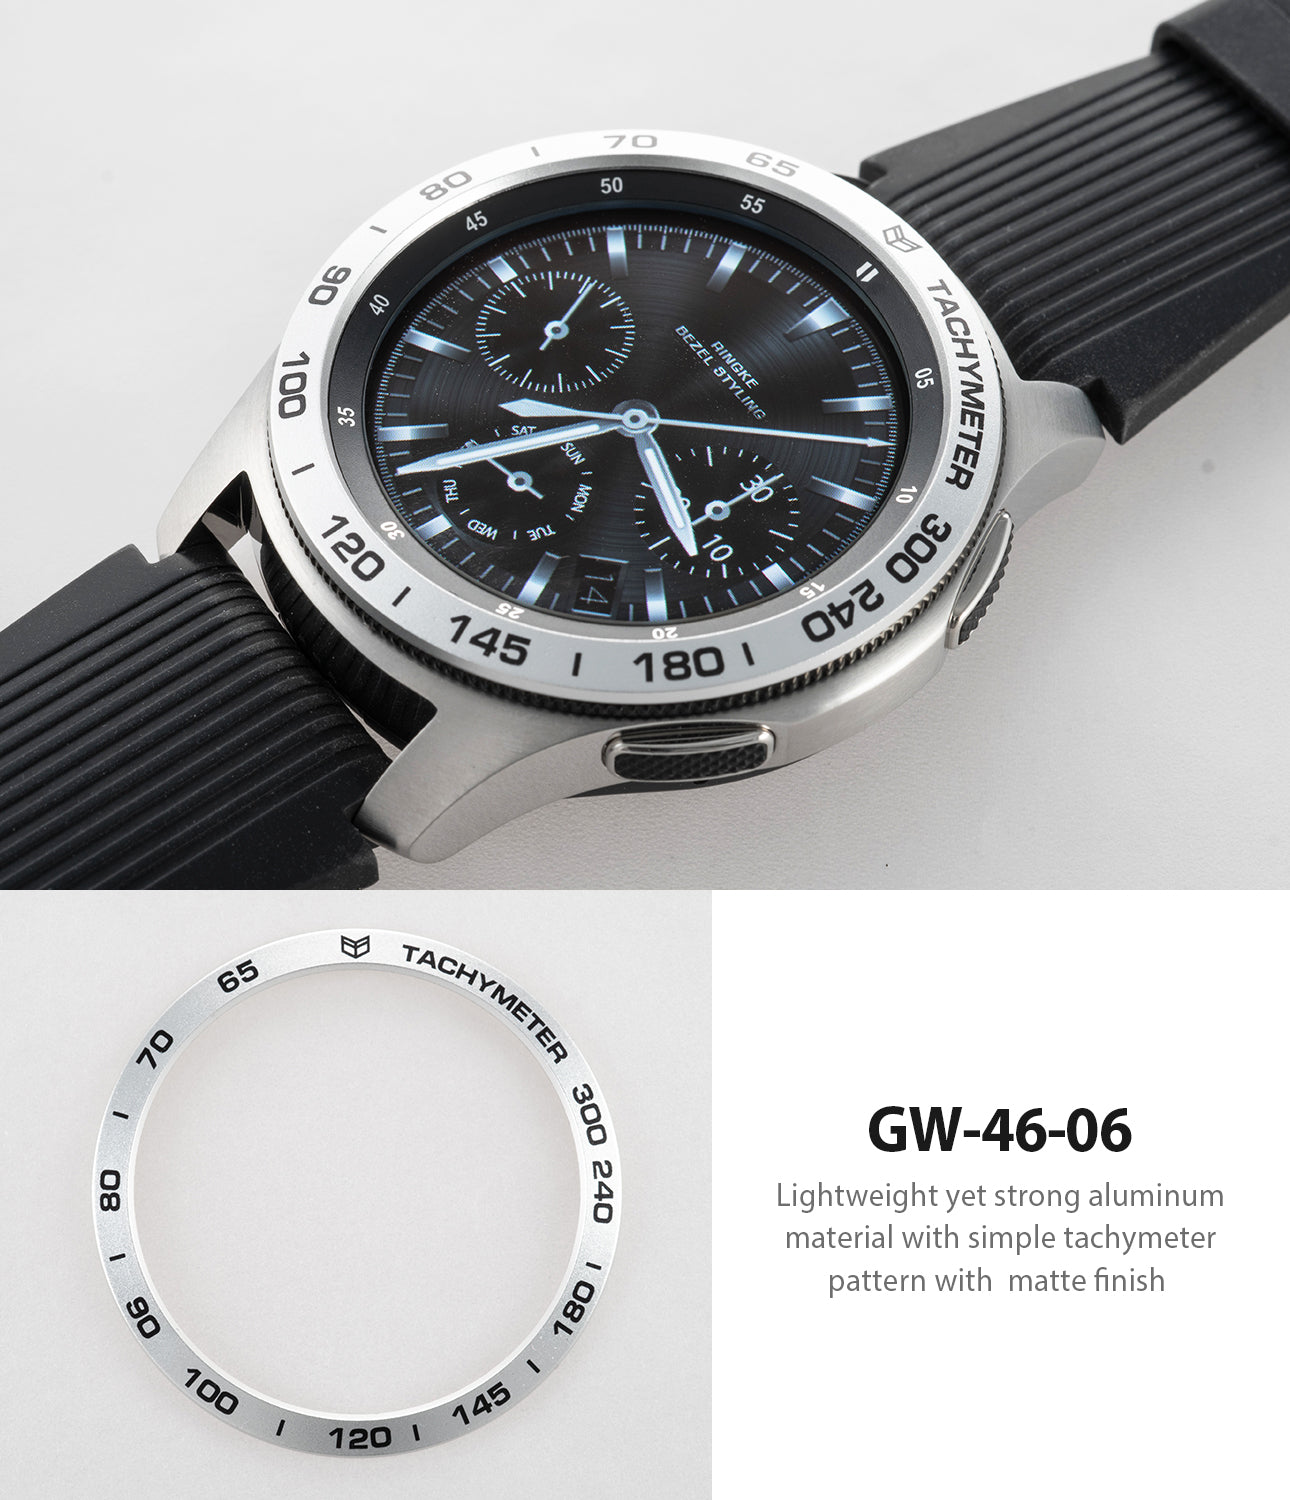 simple tachymeter pattern with matte finish for samsung galaxy watch 46mm